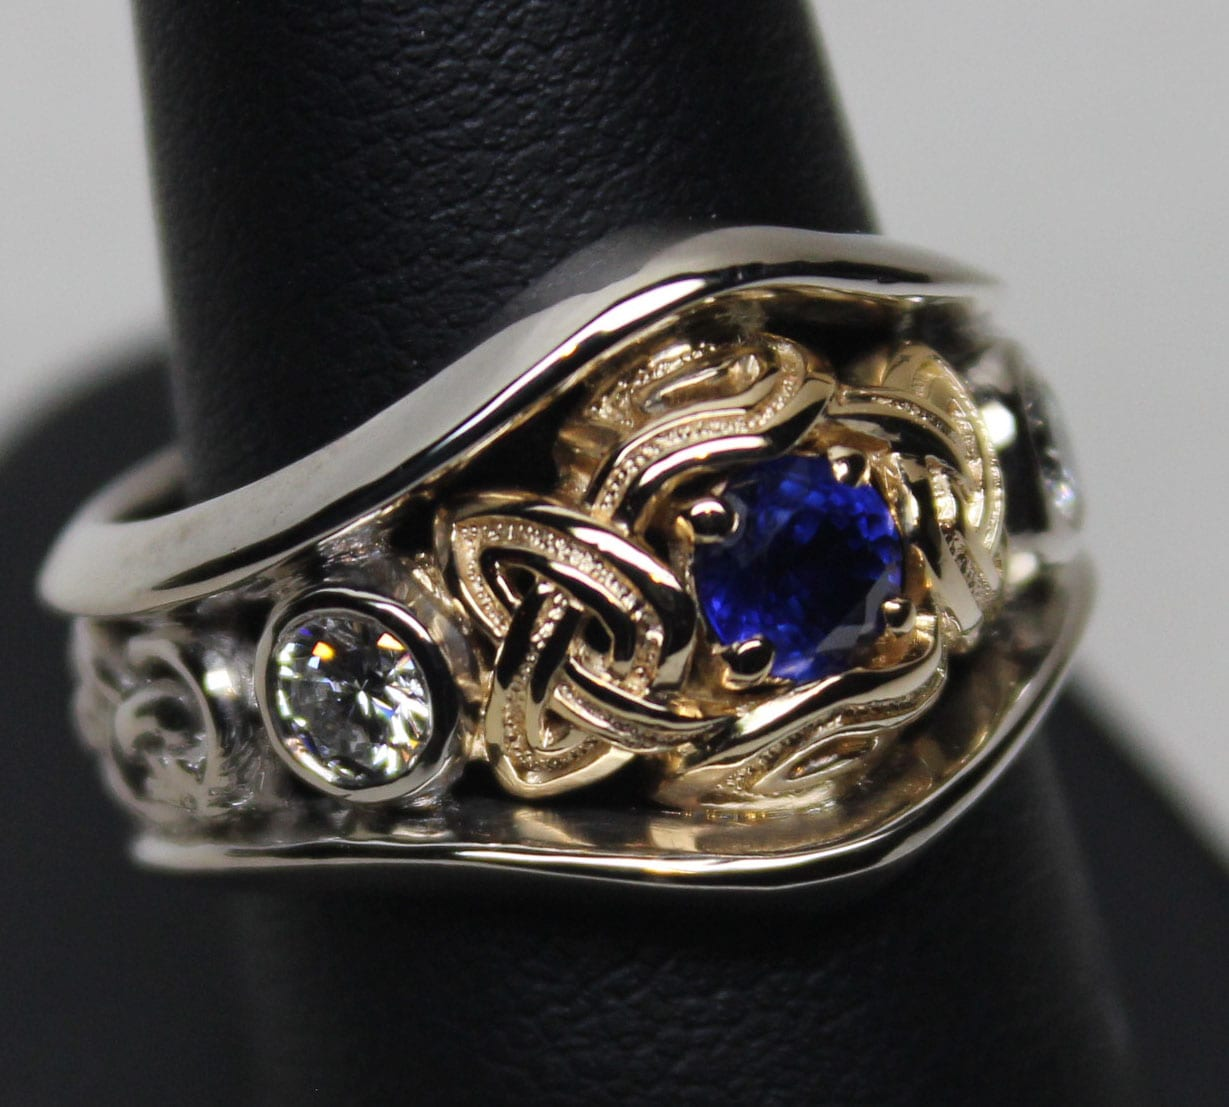 Bands and wedding rings, Special wedding ring designs we've